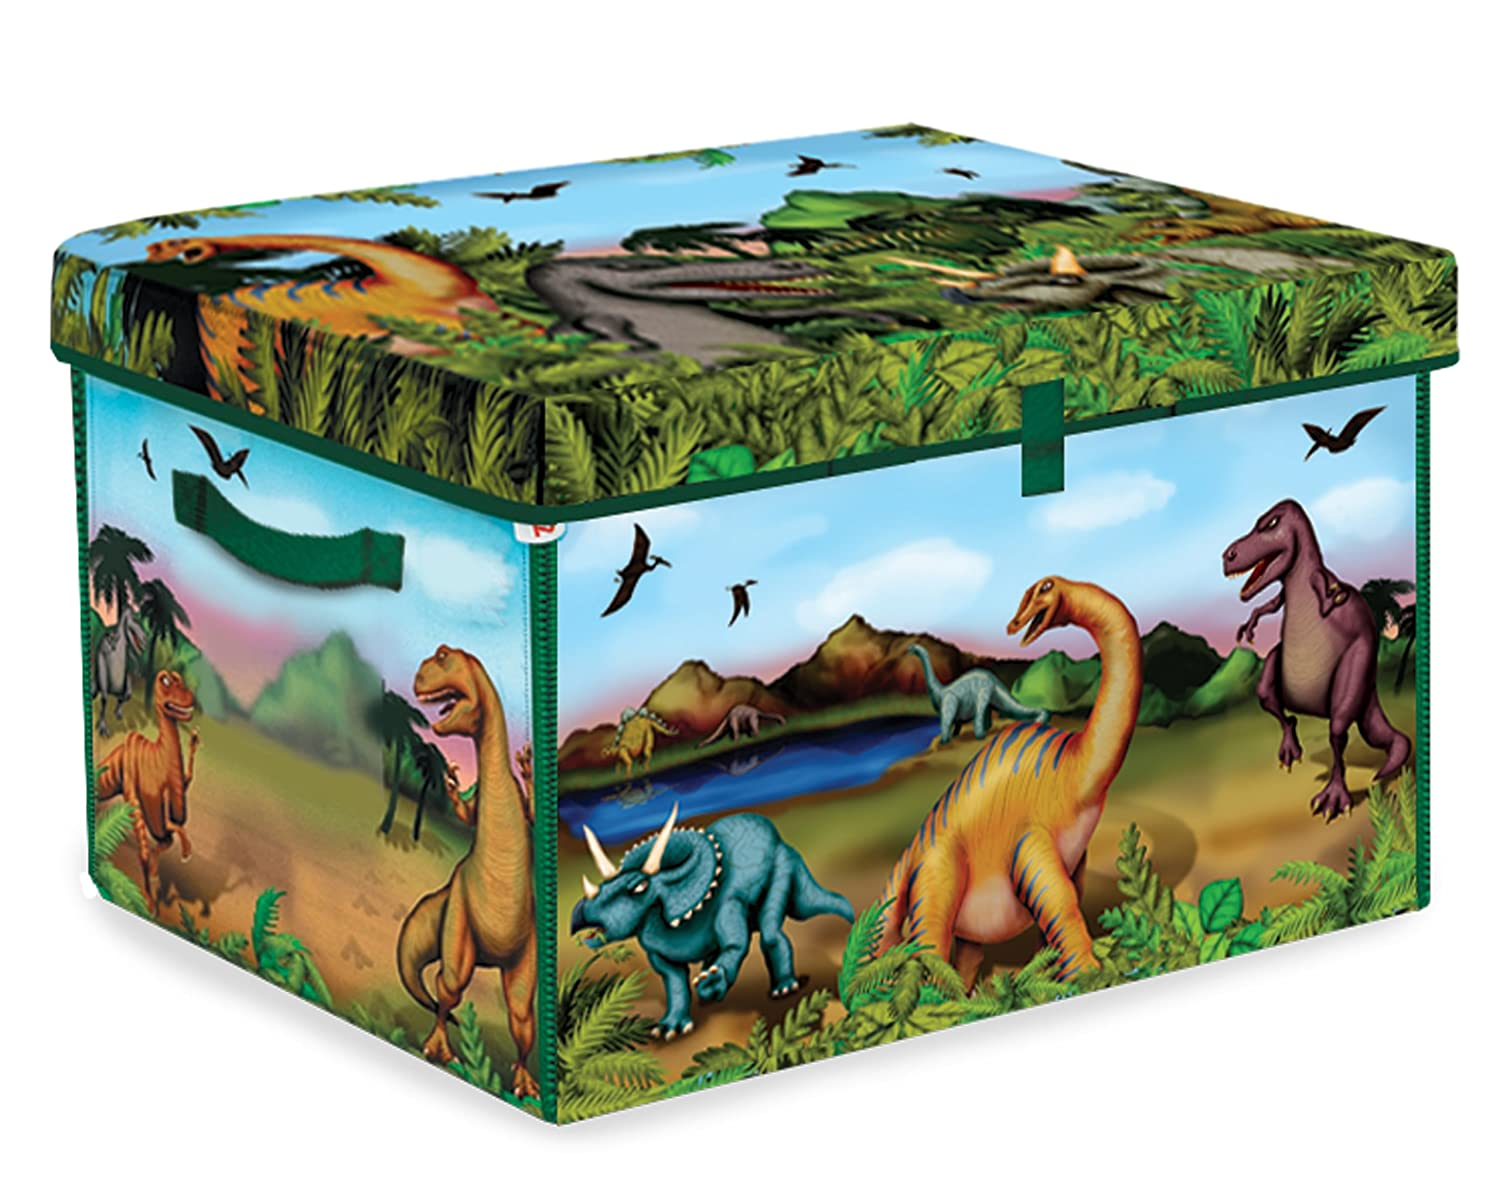 zipbin 160 dinosaur collector toy box u0026 play set w2 dinosaurs